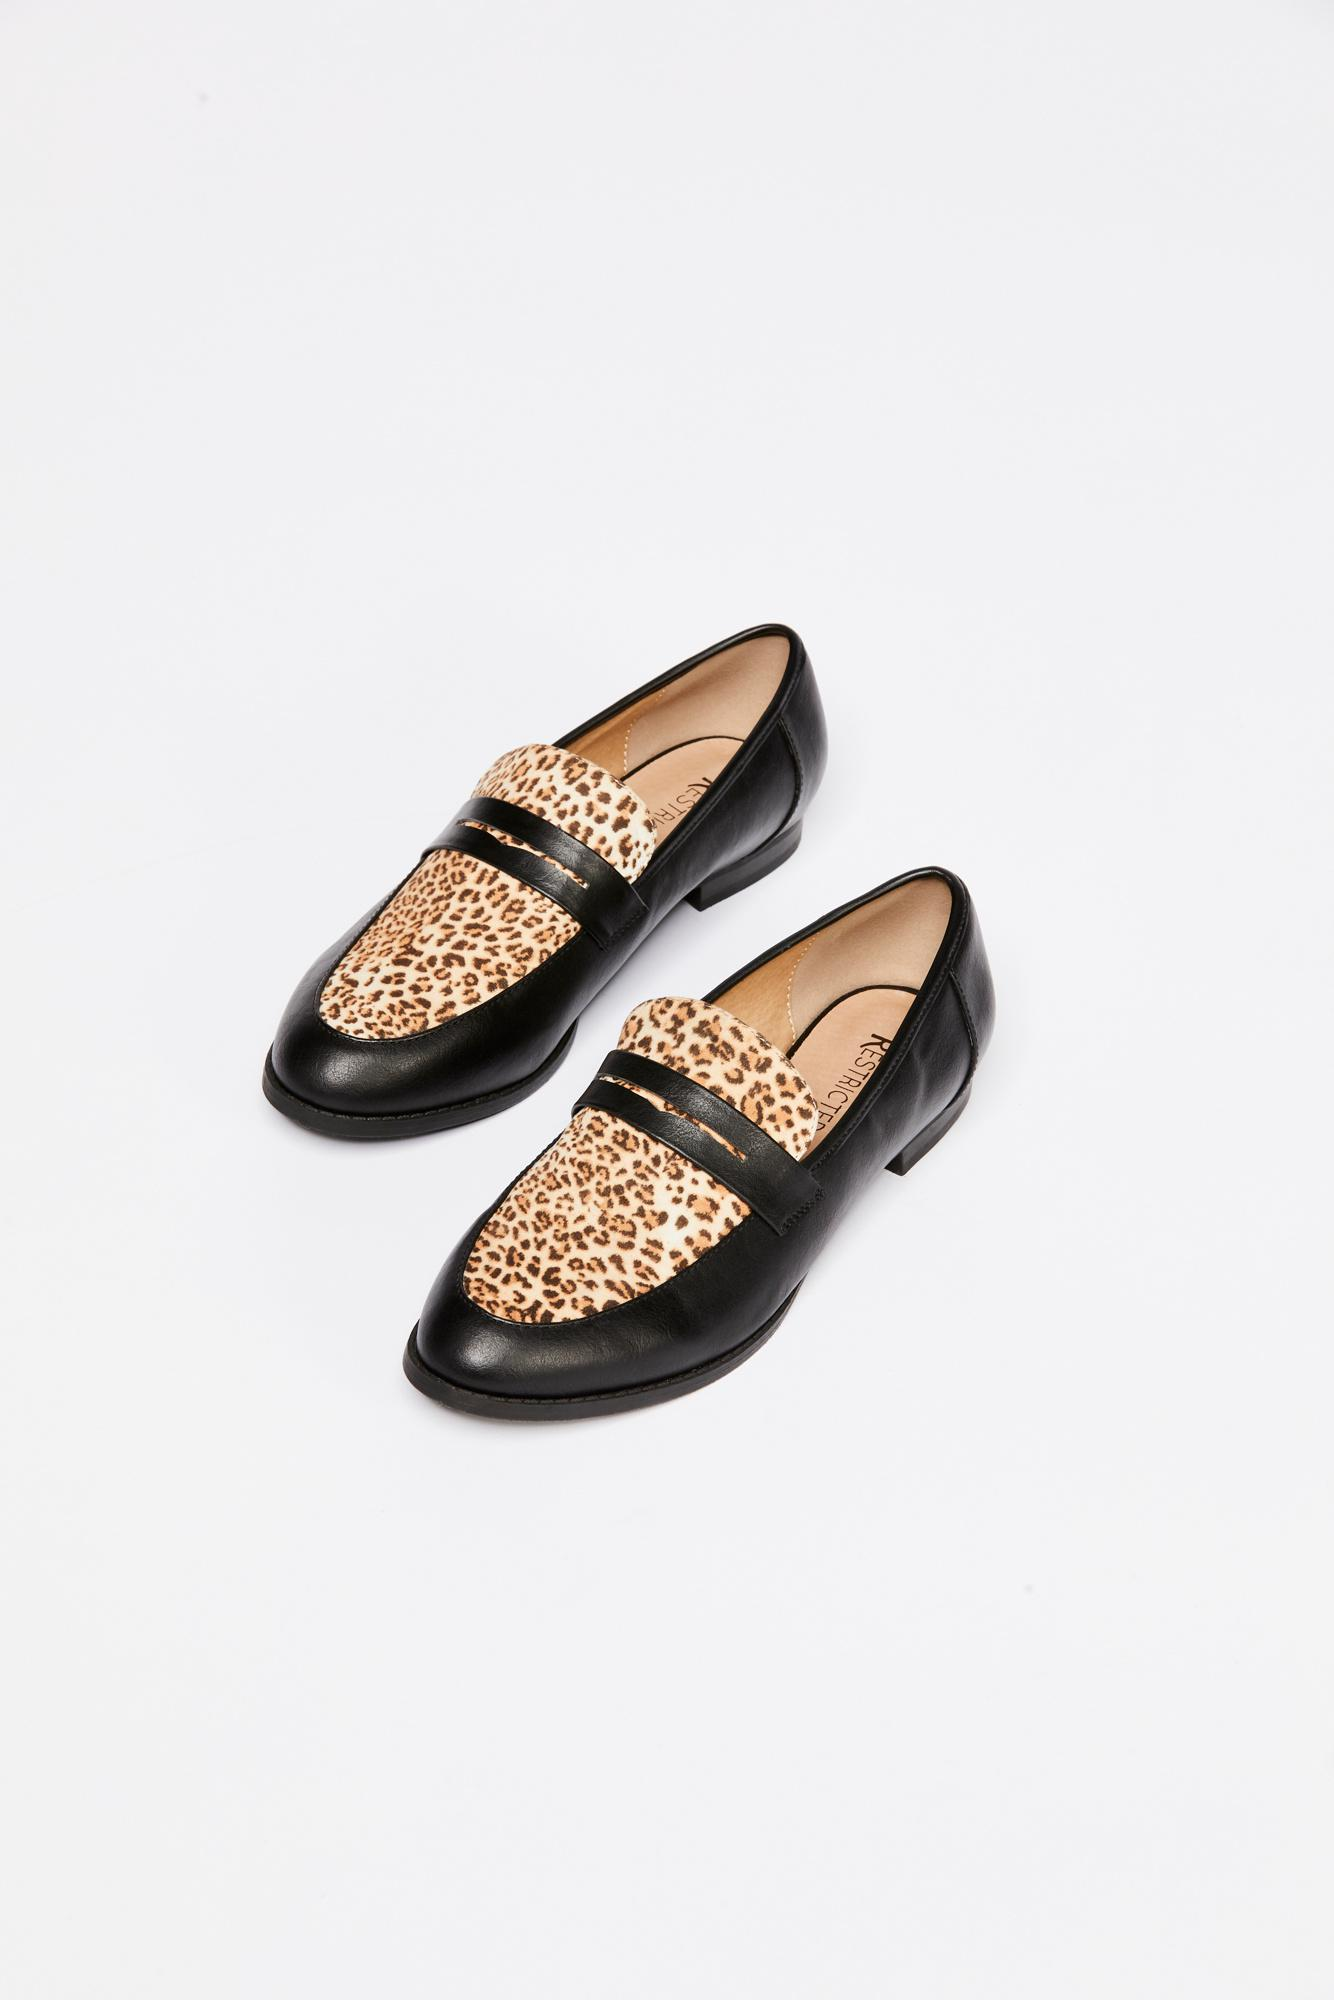 8a7d5e91213 Lyst free people lou penny loafer restricted in brown jpg 1334x2000  Stacking lou penny